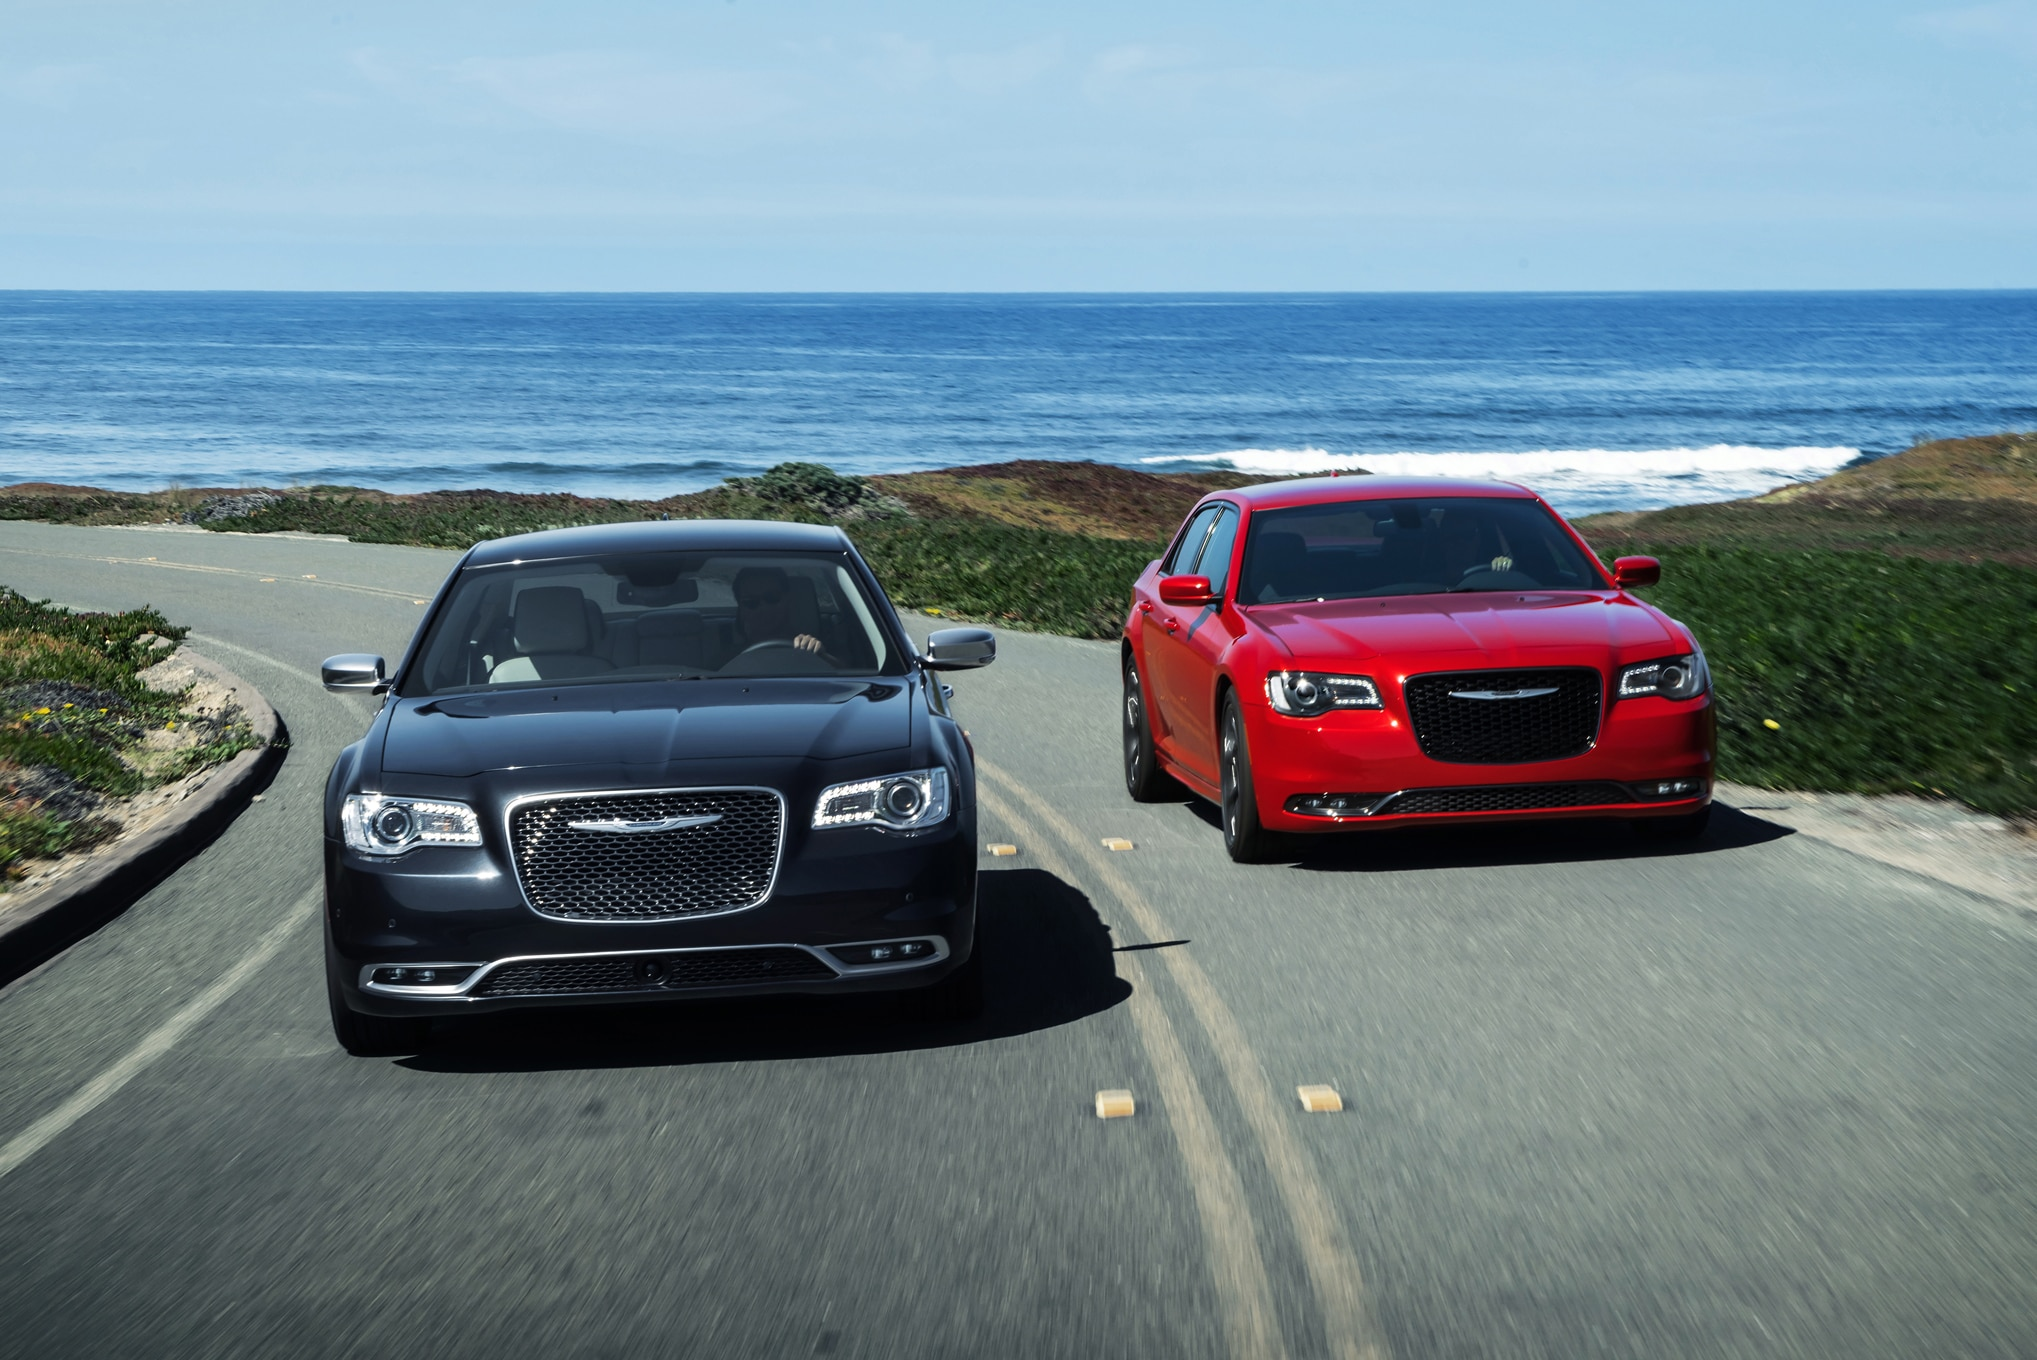 2015 Chrysler 300S And Chrysler 300C Platinum Front End In Motion 02